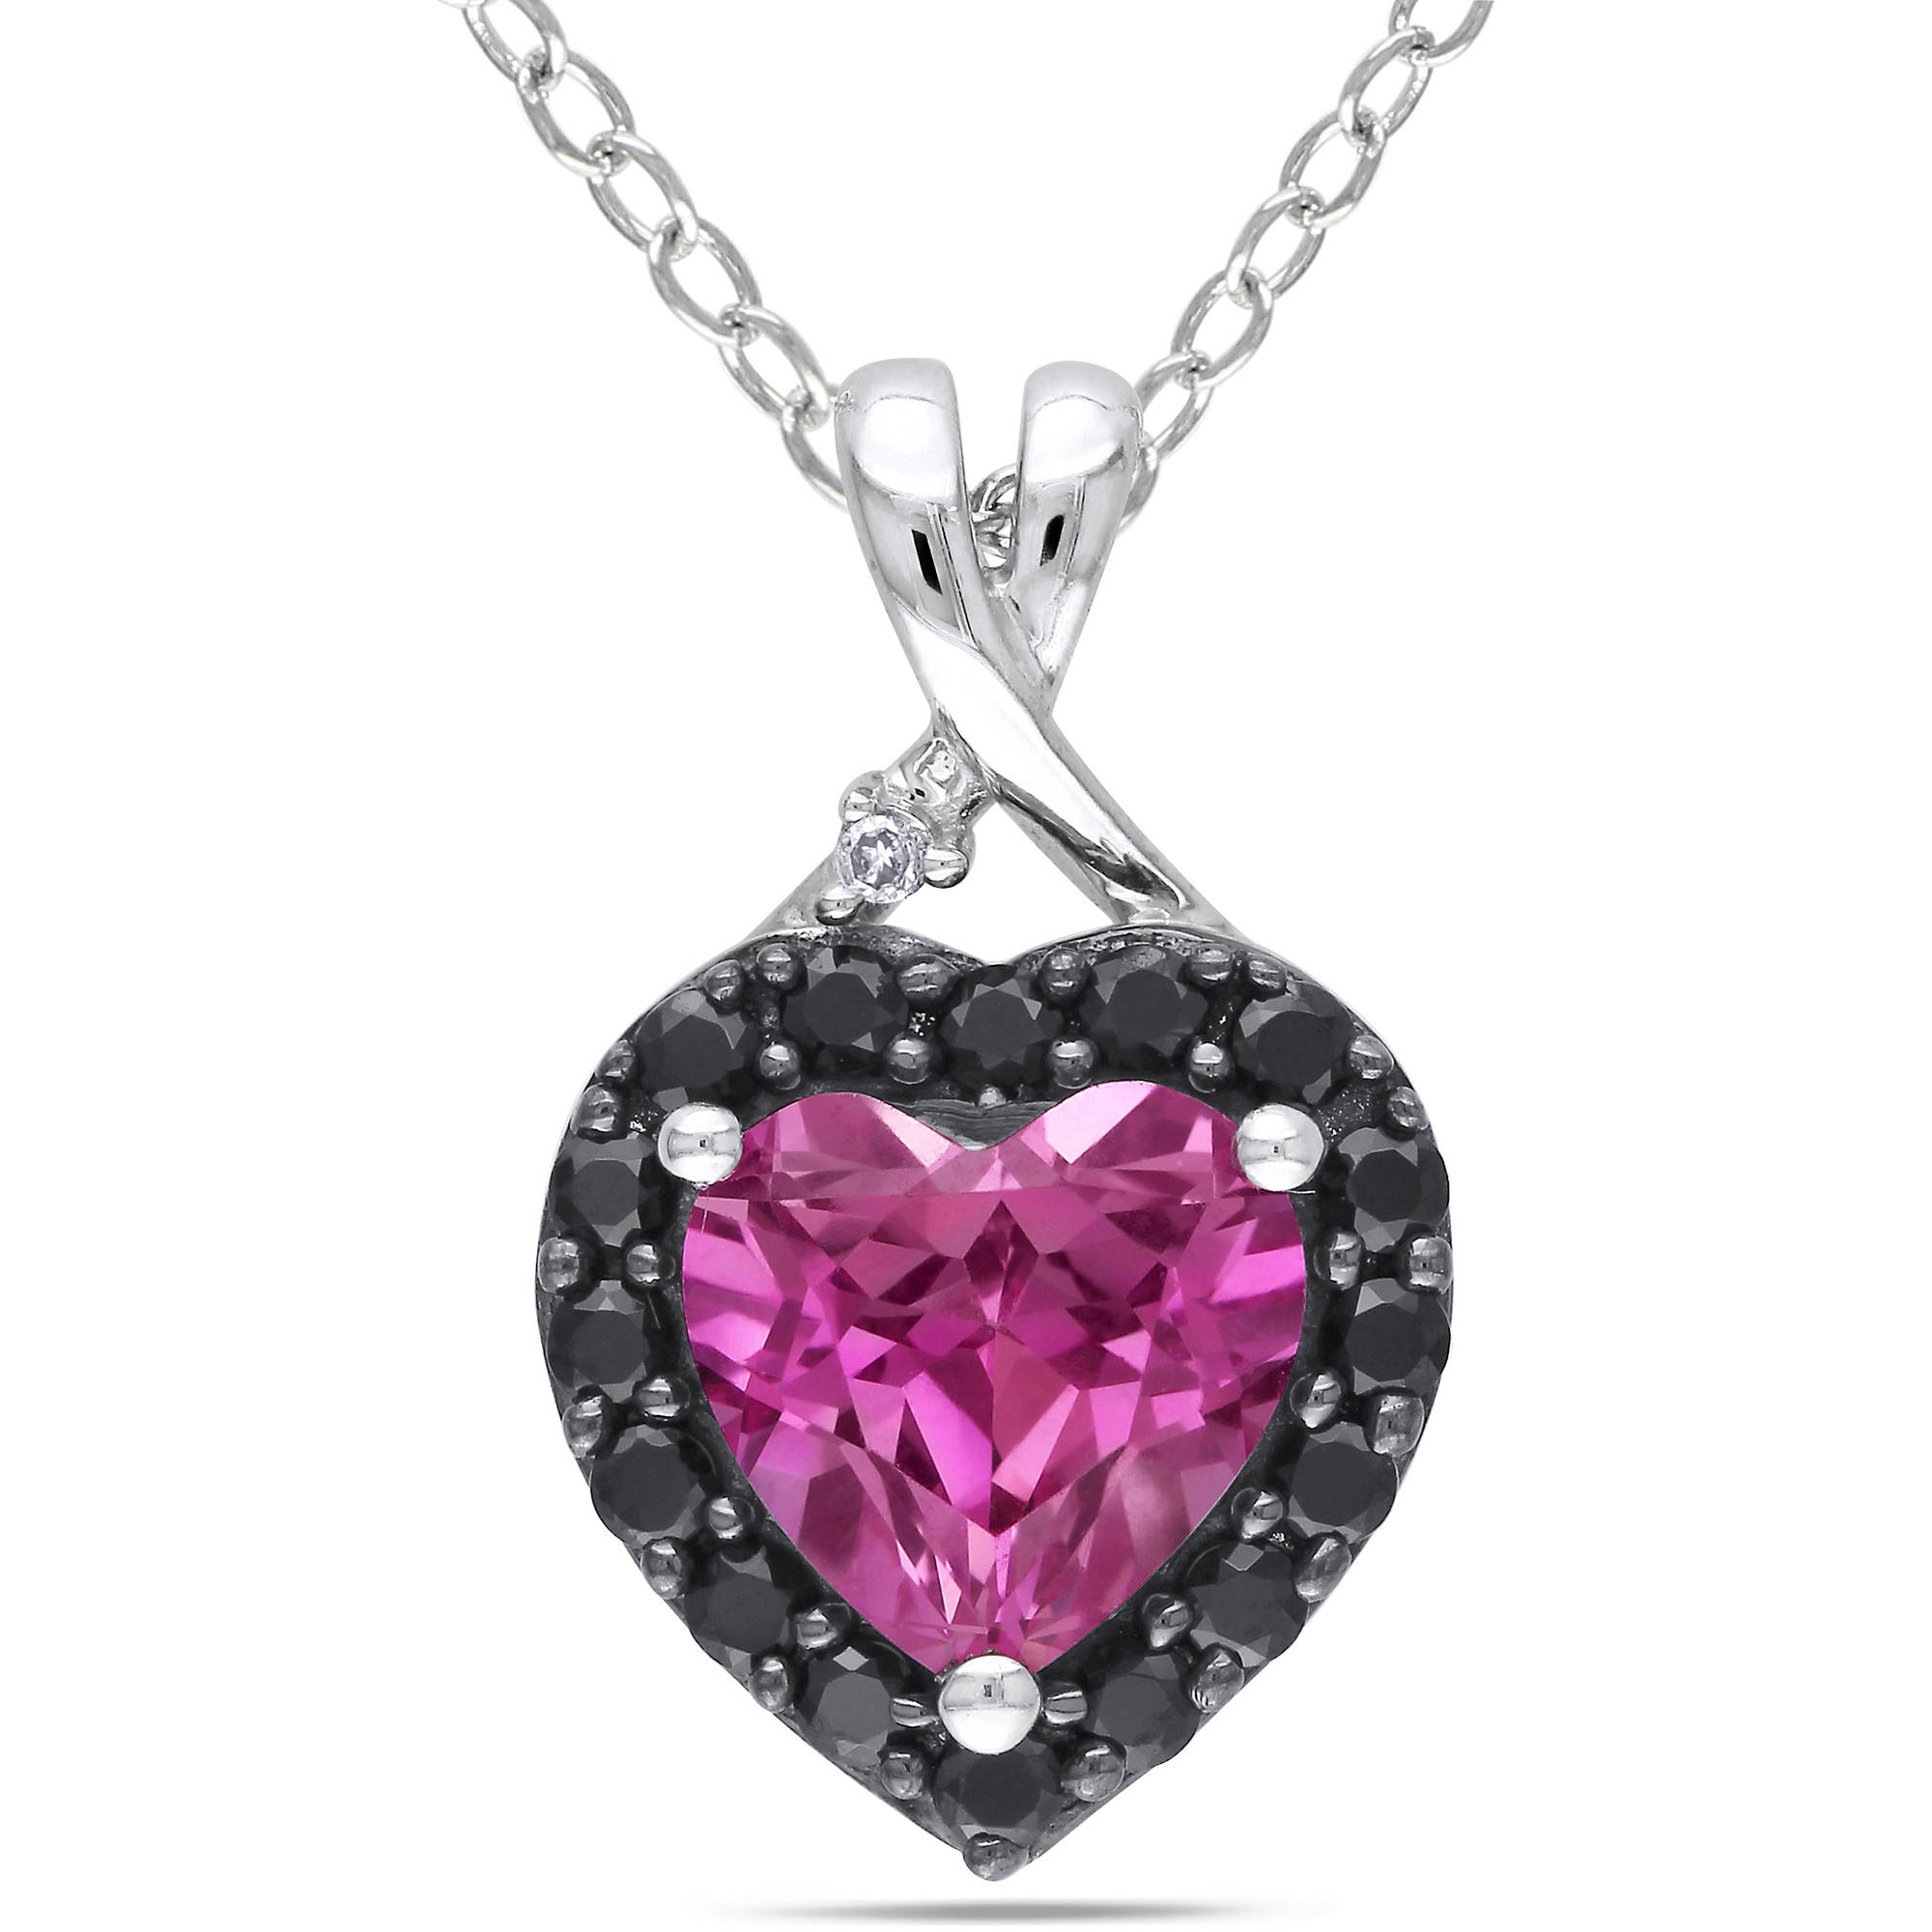 1-7/8 Carat T.G.W. Created Pink Sapphire and Black Spinel with Diamond Accent Sterling Silver Heart Pendant, 18